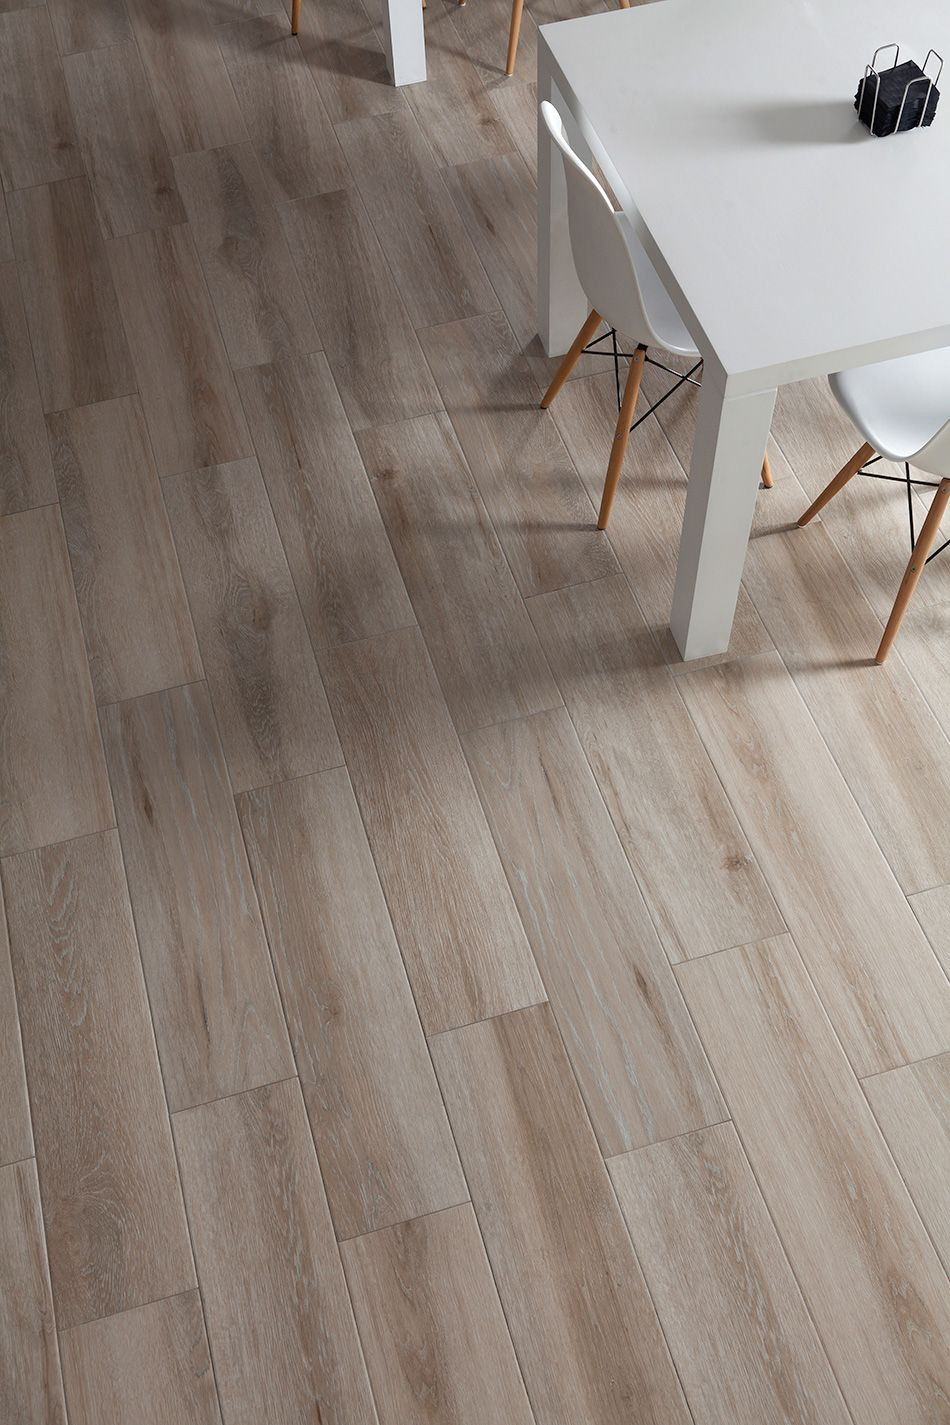 Hardwood Flooring Installation Baton Rouge Of Bosco Argent Beautiful Spanish Timber Look Tiles Available at In Bosco Argent Beautiful Spanish Timber Look Tiles Available at toptiles Com Au